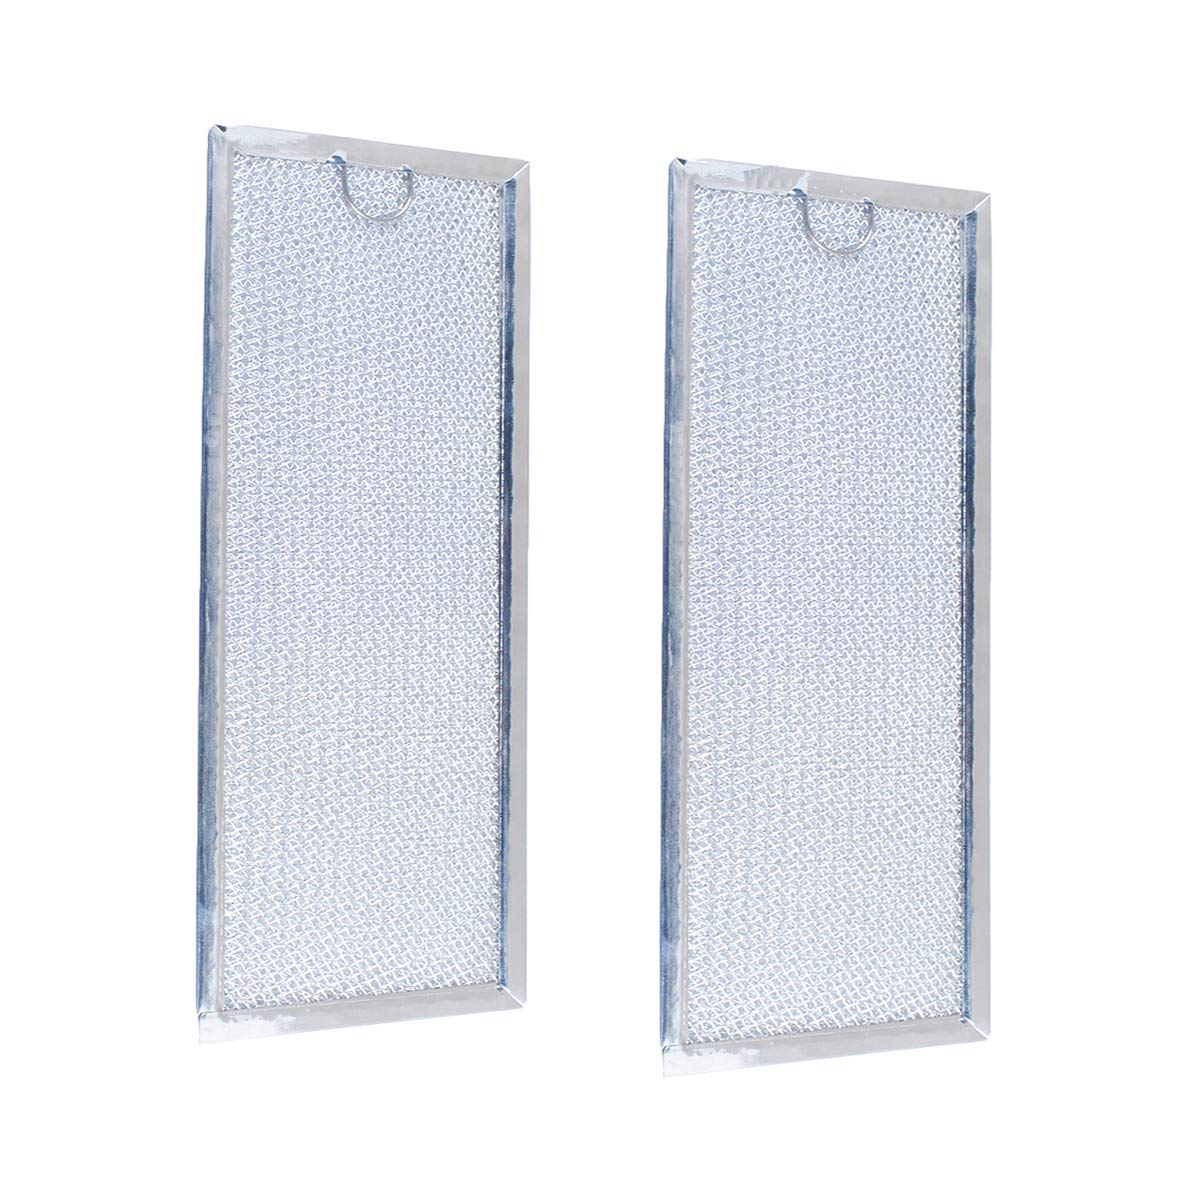 Swess WB06X10288 Grease Filter Compatible for GE General Electric Hotpoint Microwave Filter WB6X10288 910437 AP3417082